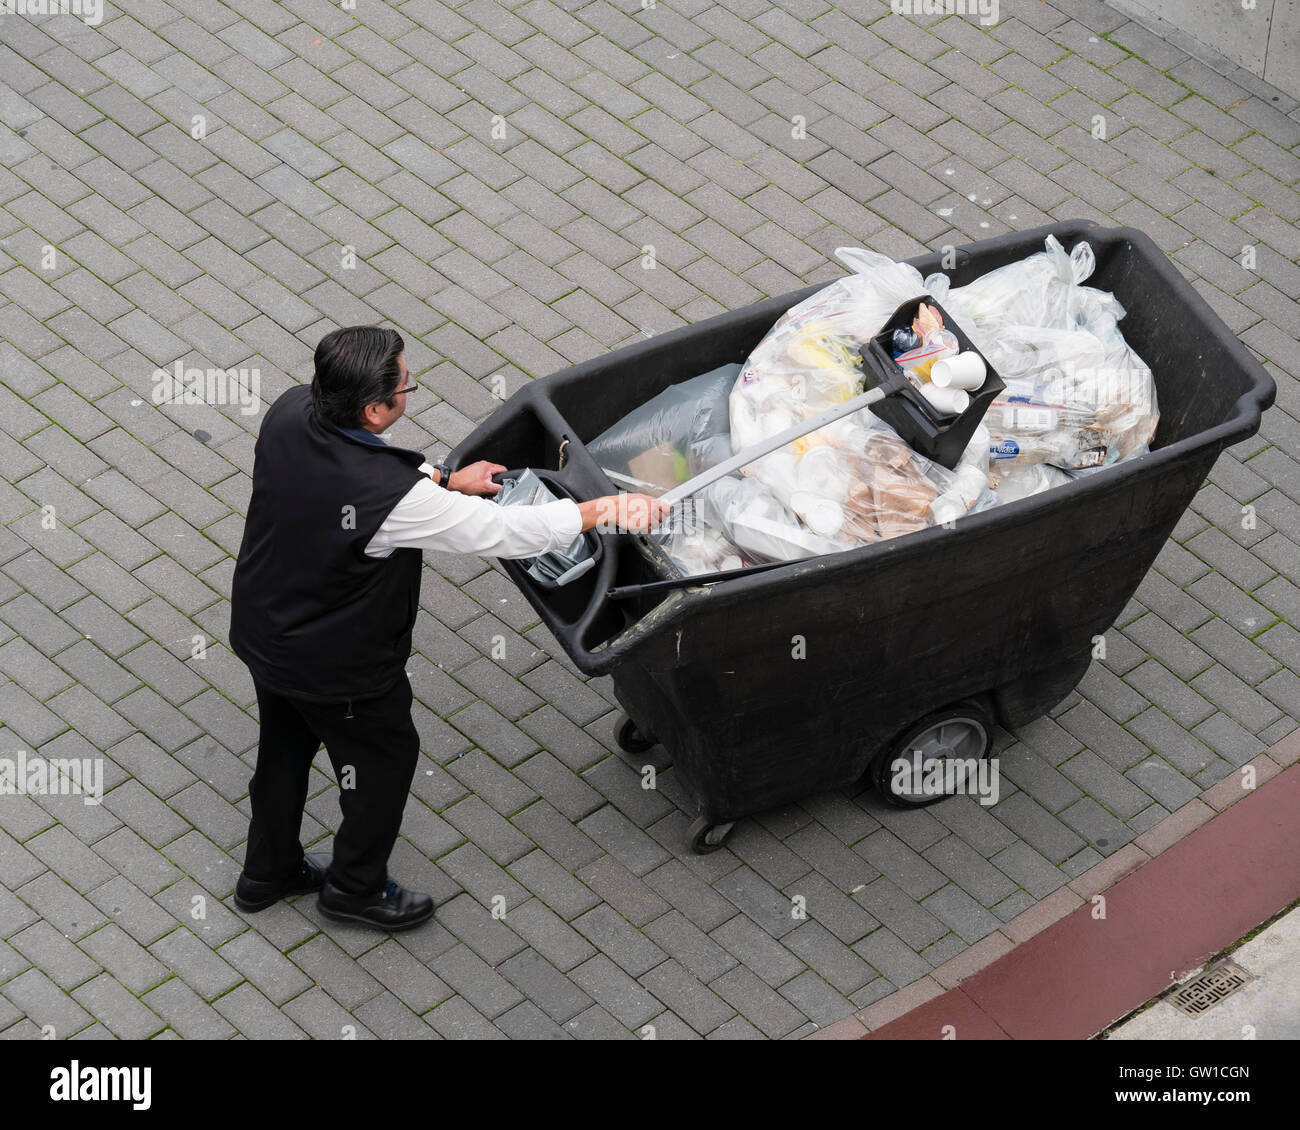 worker picking up trash and bags of garbage high angle overhead view - Stock Image